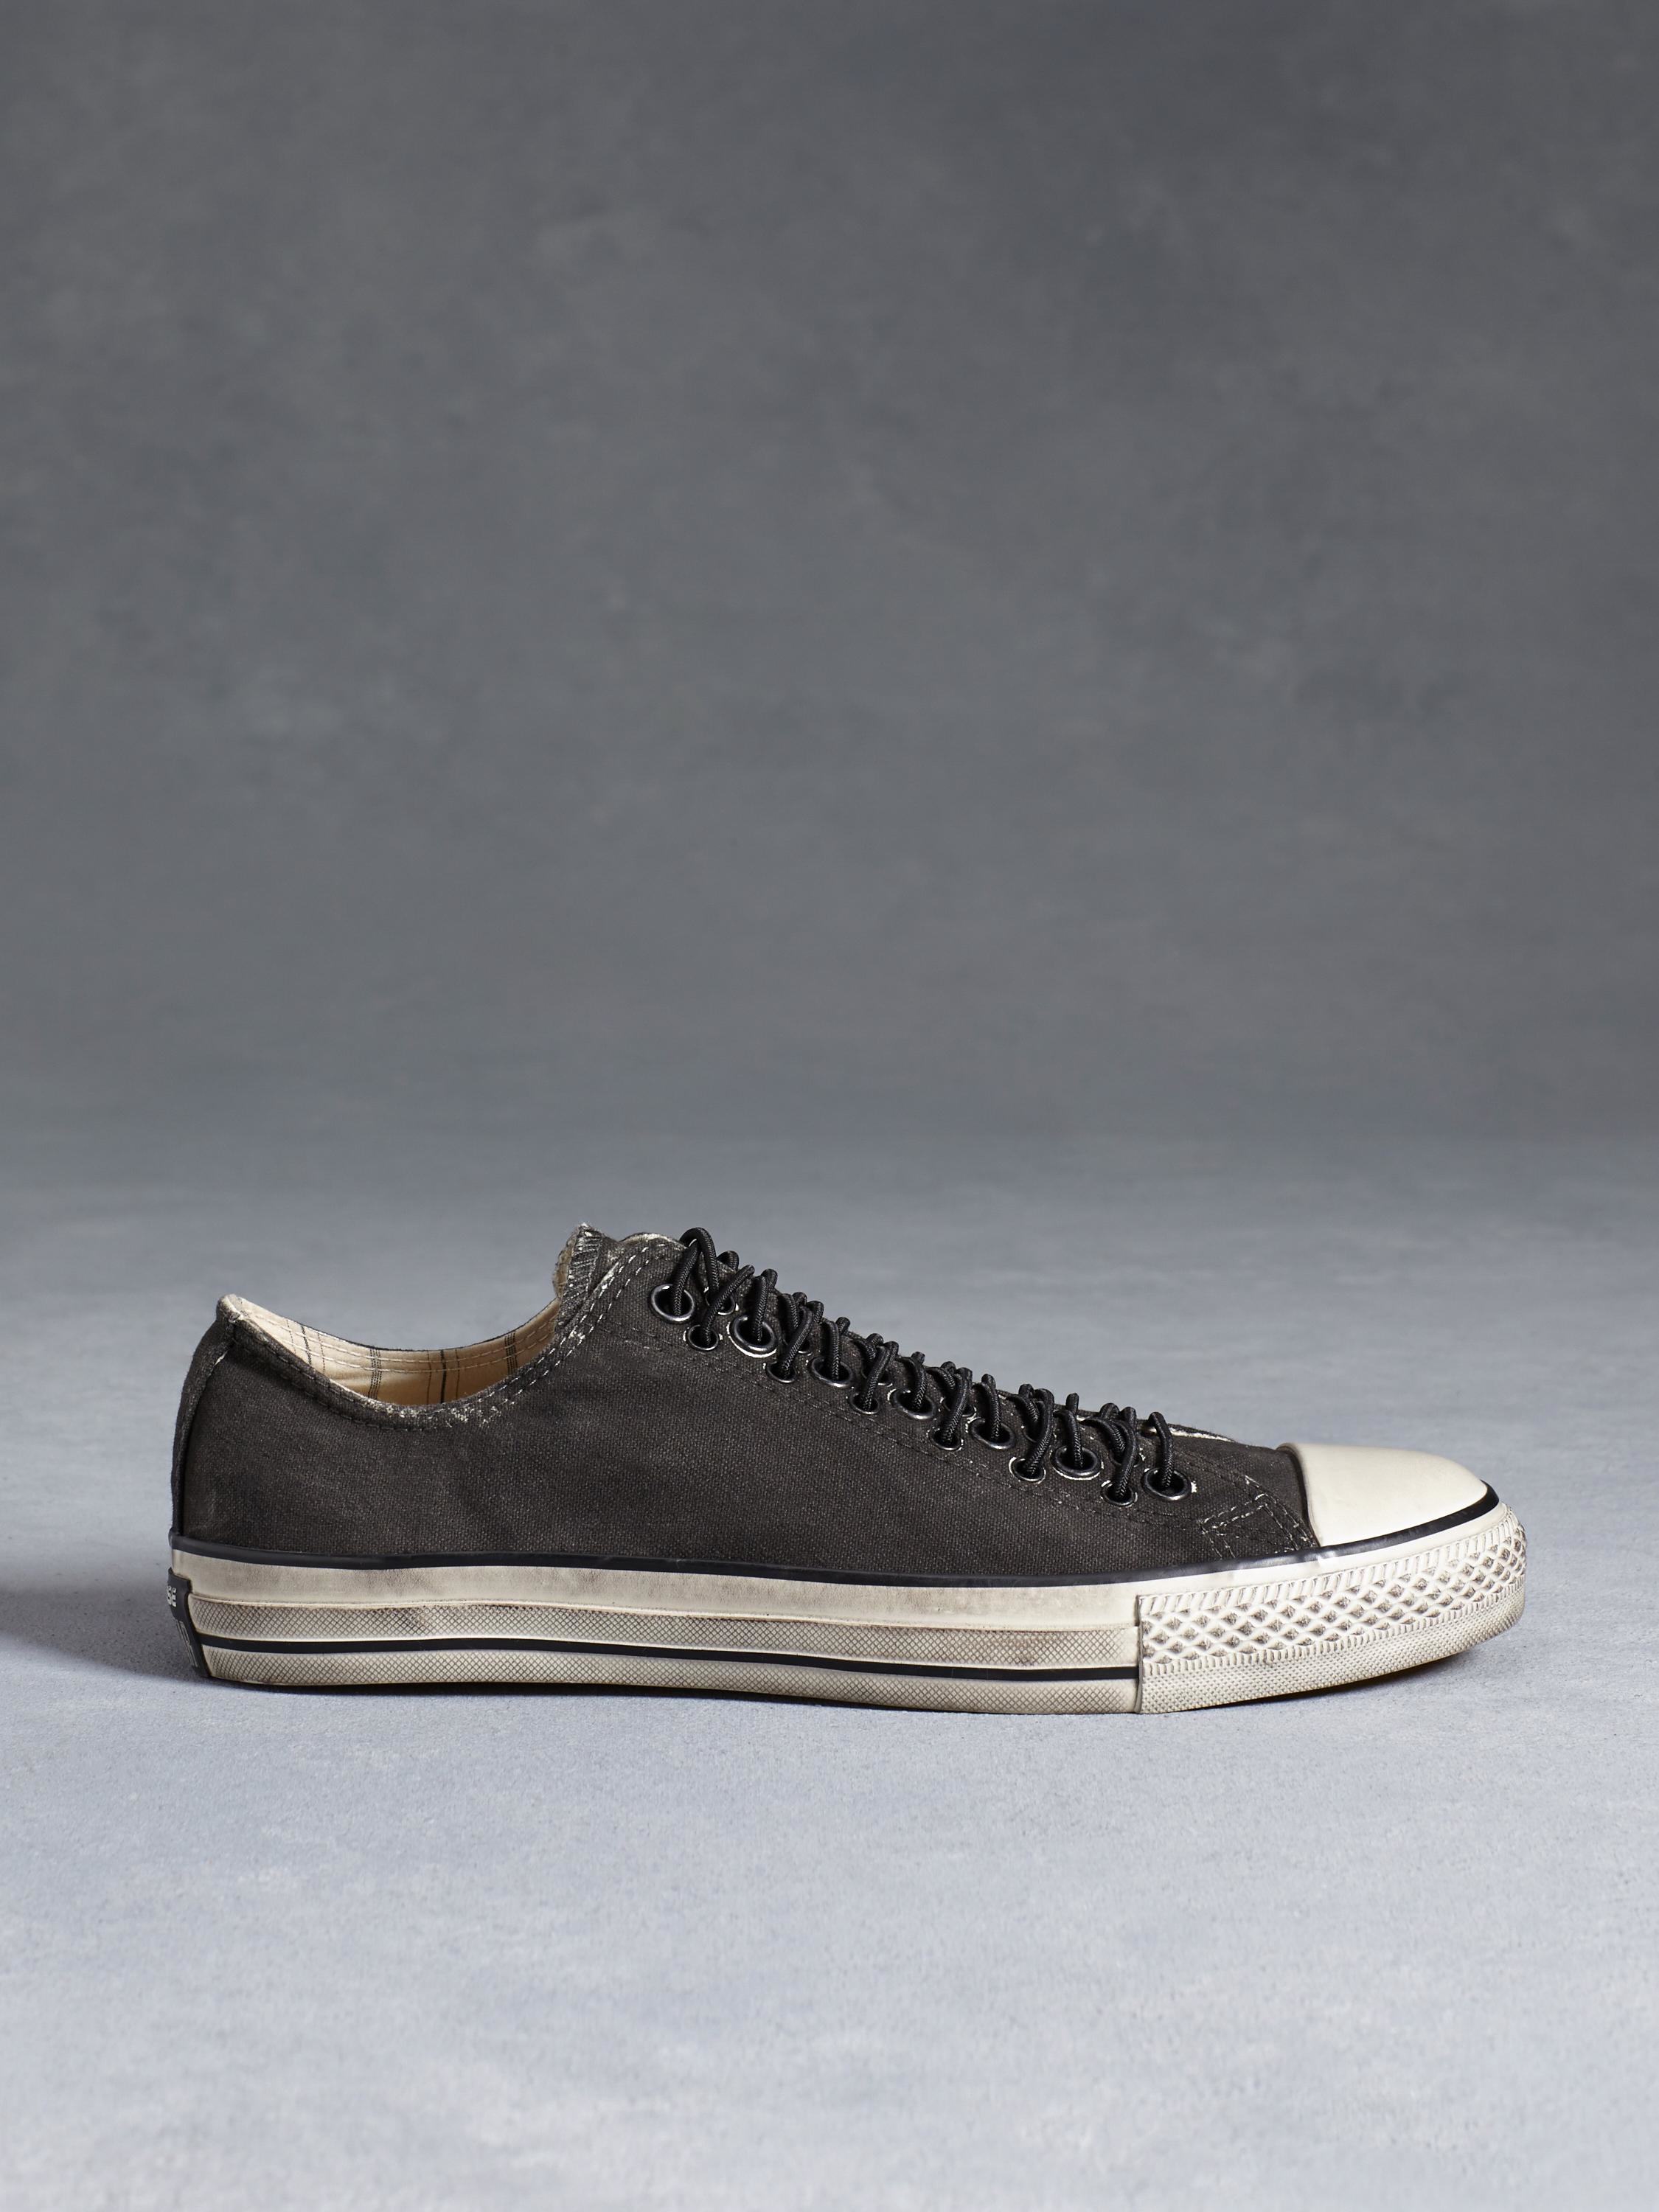 c4827c0502d6 John Varvatos All Star Multi-eyelet Painted Canvas Chuck Taylor in ...